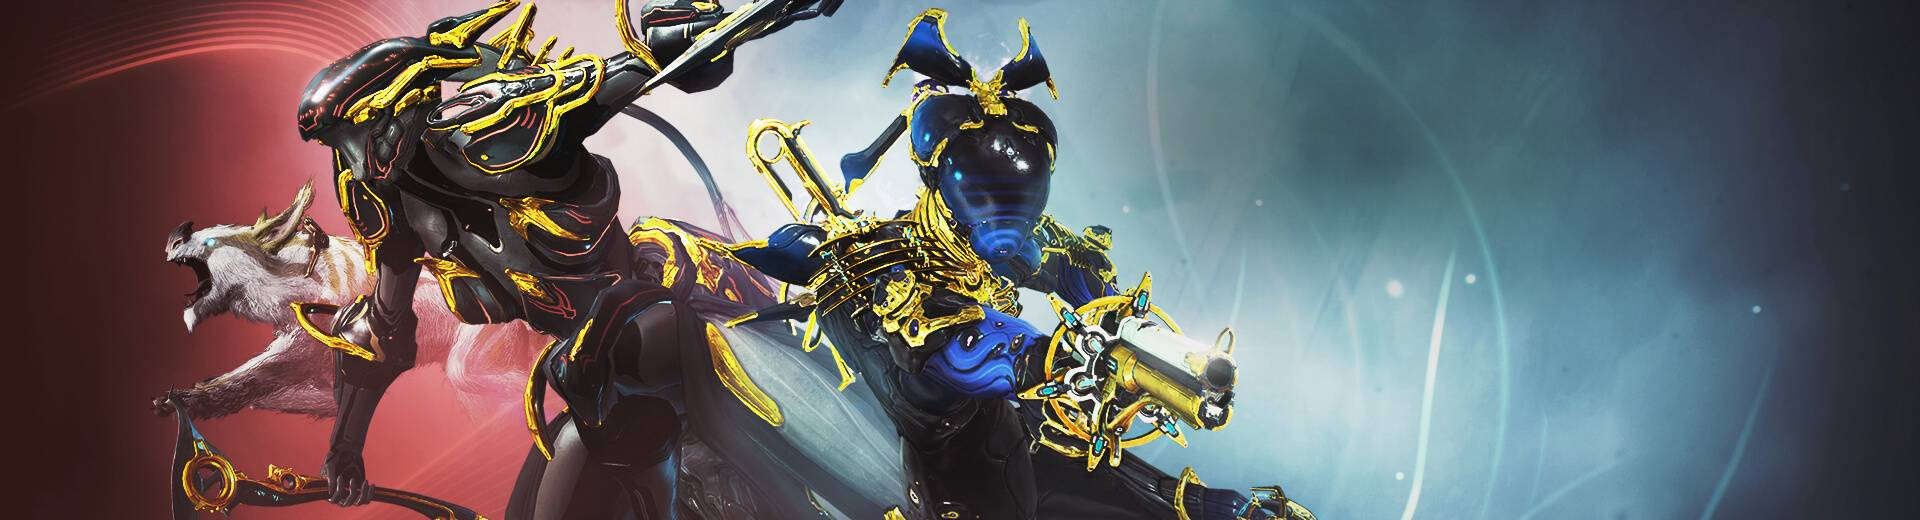 Warframe Trinity And Nova Prime Vault Available Now Nova prime prices from the trade chat and warframe market. warframe trinity and nova prime vault